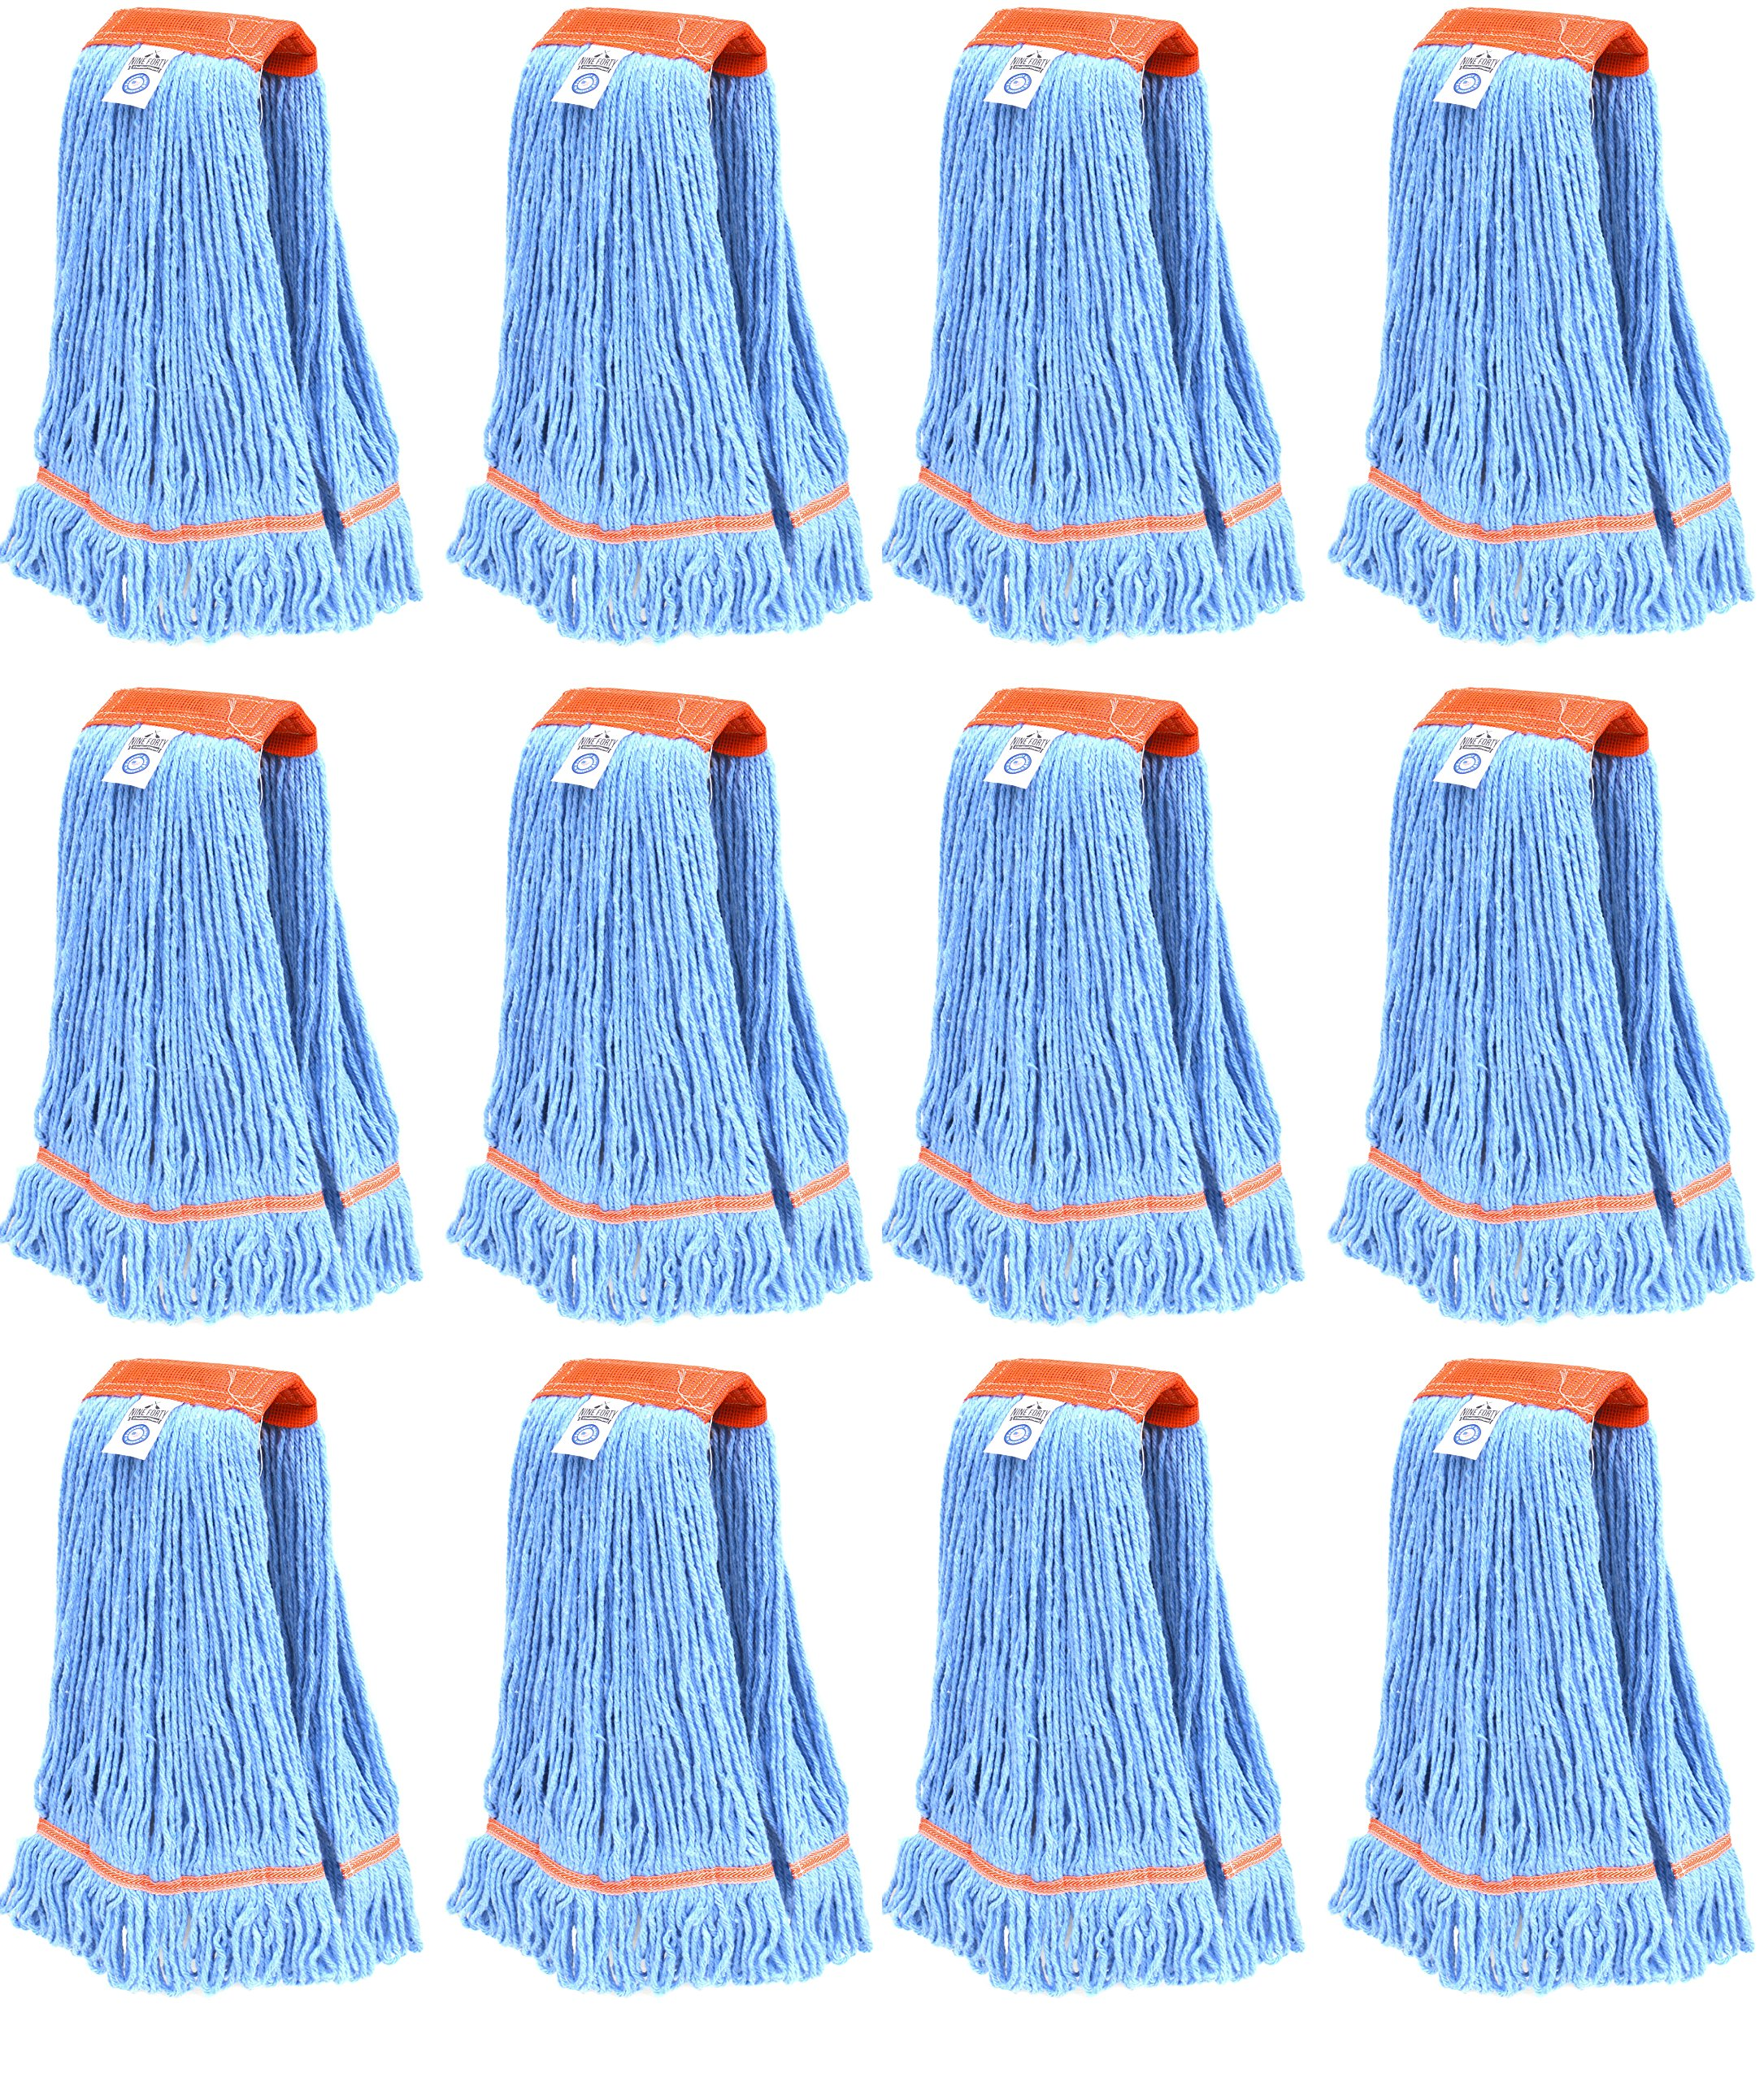 Nine Forty Industrial Strength Premium Looped End Wet Mop Head Refill – 4 Ply Synthetic Yarn (12, Large)